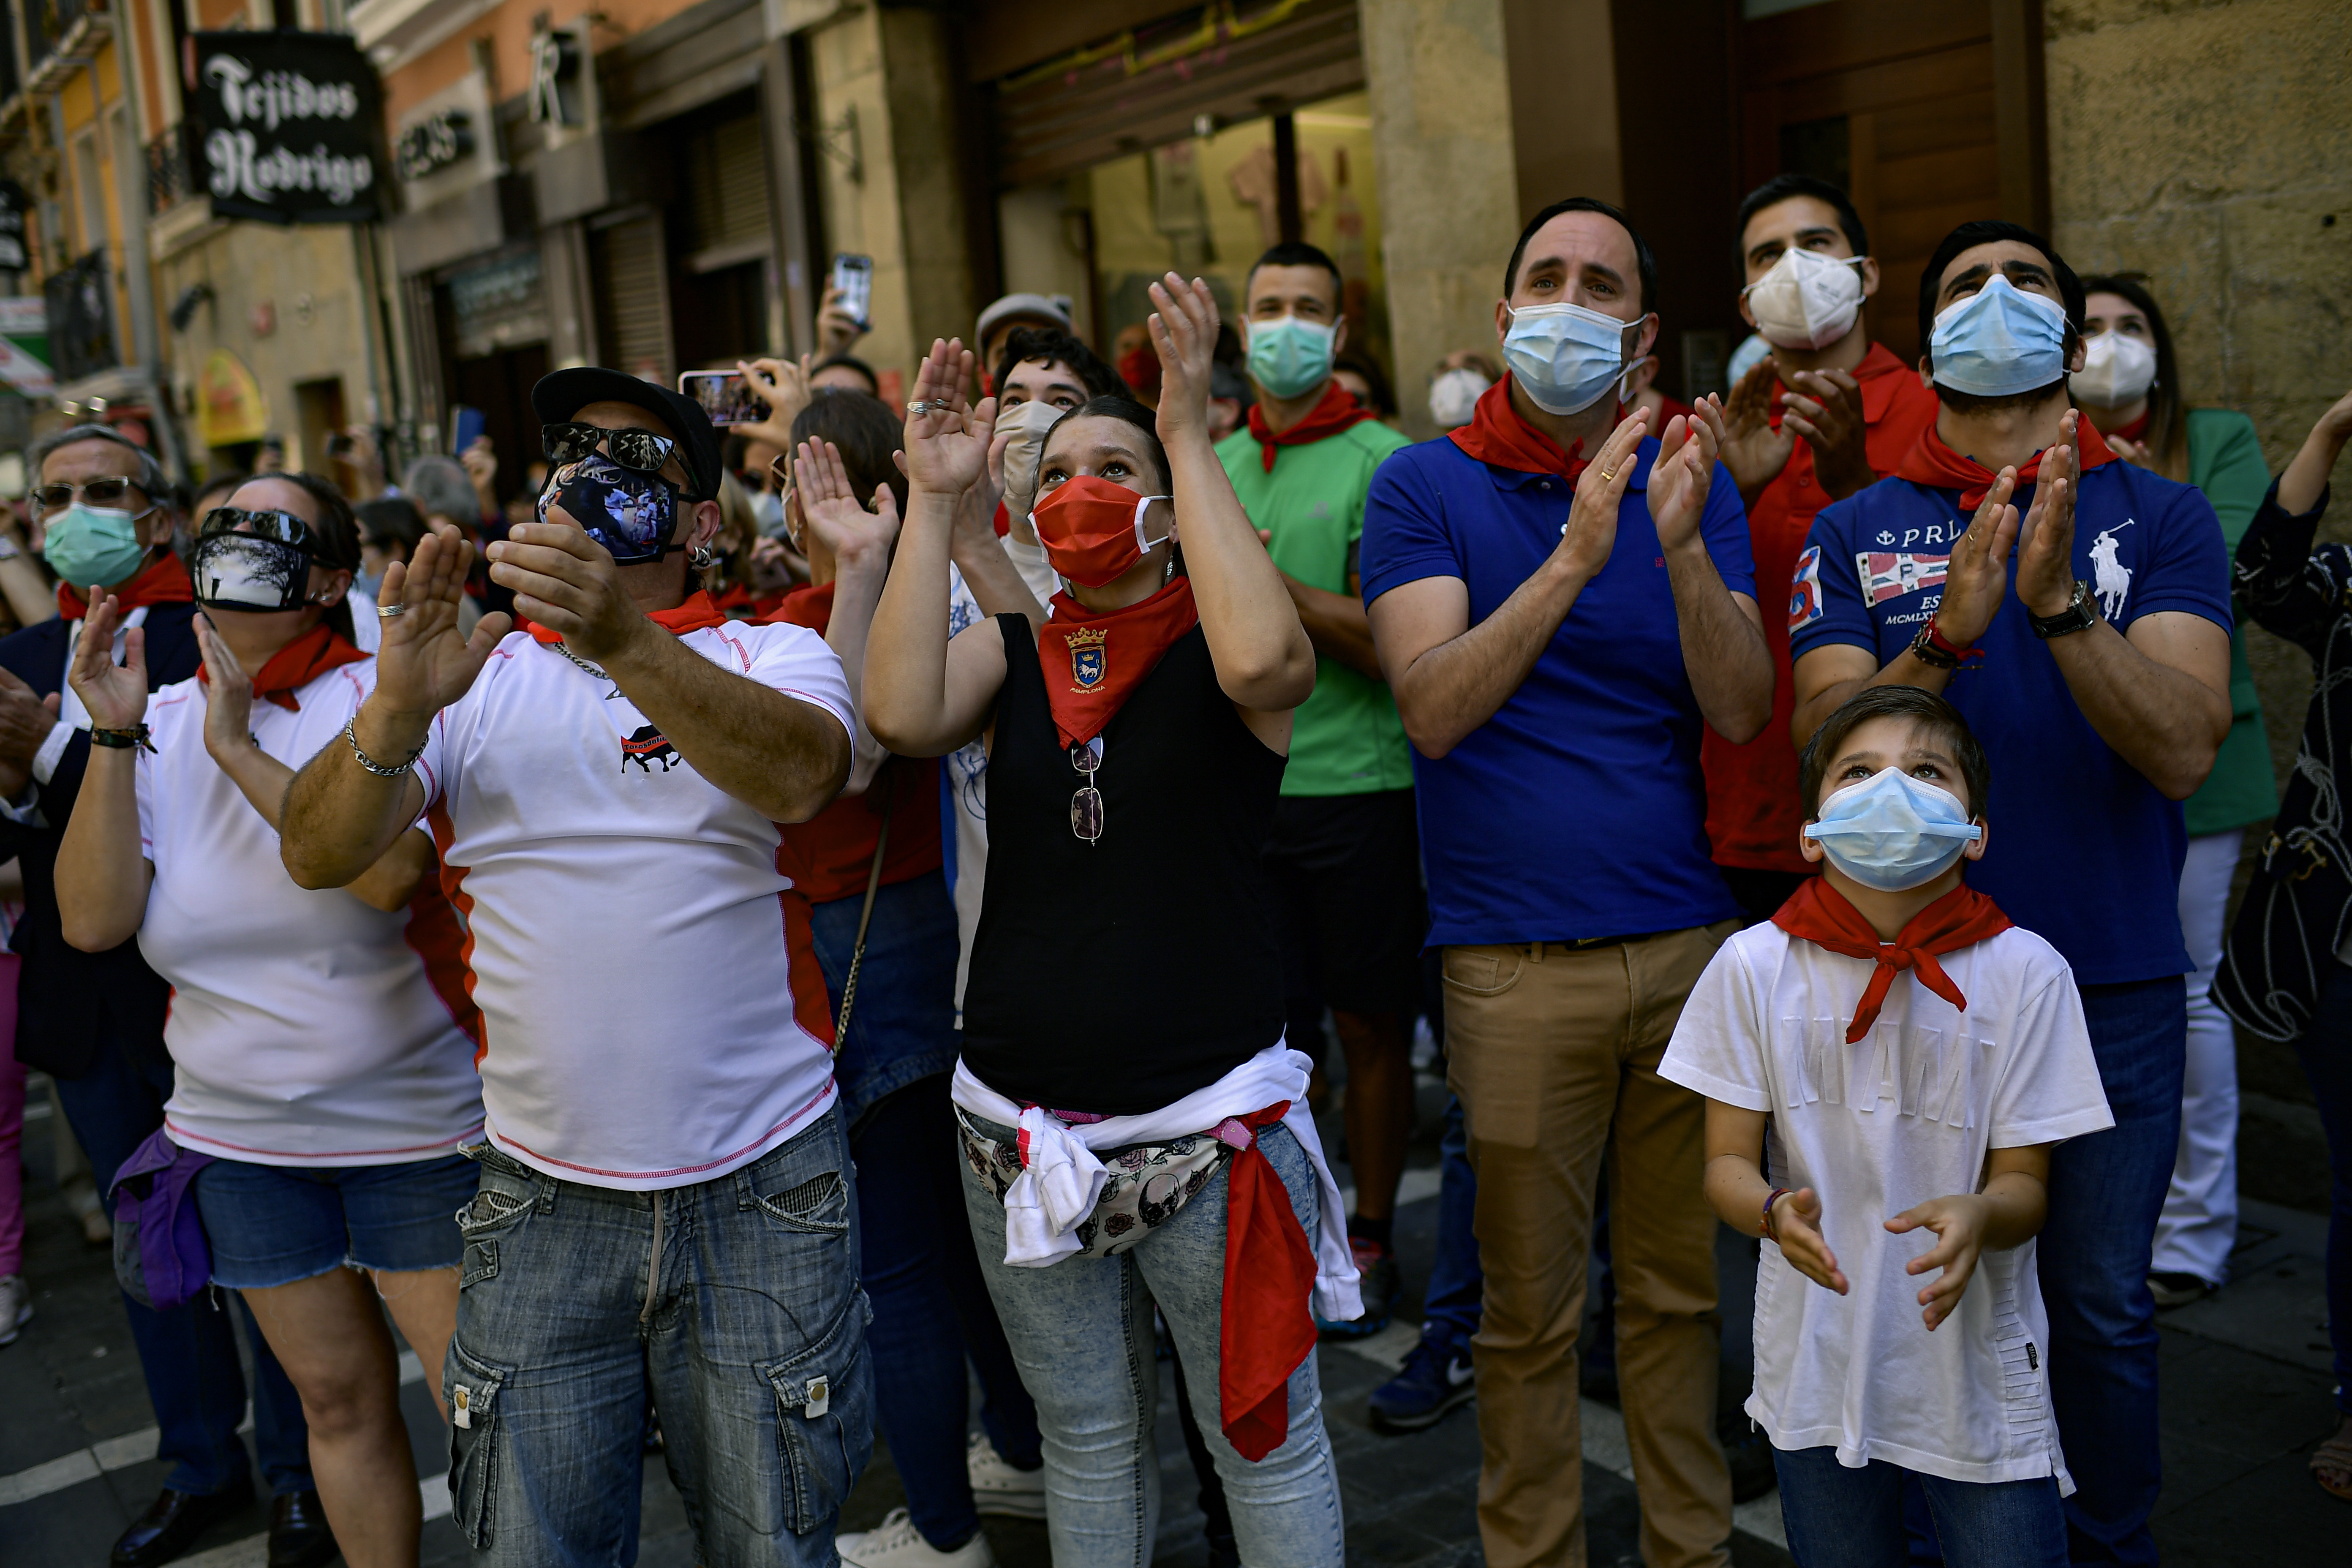 FILE In this Saturday, June 20, 2020 file photo, residents wear faces mask to protect against coronavirus and wear San Fermin's red kerchief as people march the route of the running of the bulls while a singer performs a San Fermin's festival song, in Pamplona, northern Spain. Spain reopened its borders to European tourists Sunday, June 21, 2020 in a bid to kickstart its economy while Brazil and South Africa struggled with rising coronavirus infections. At a campaign rally, President Donald Trump said he told the U.S. government to reduce testing for the virus, apparently to avoid unflattering statistics ahead of the U.S. election in November. (AP Photo/Alvaro Barrientos, File)